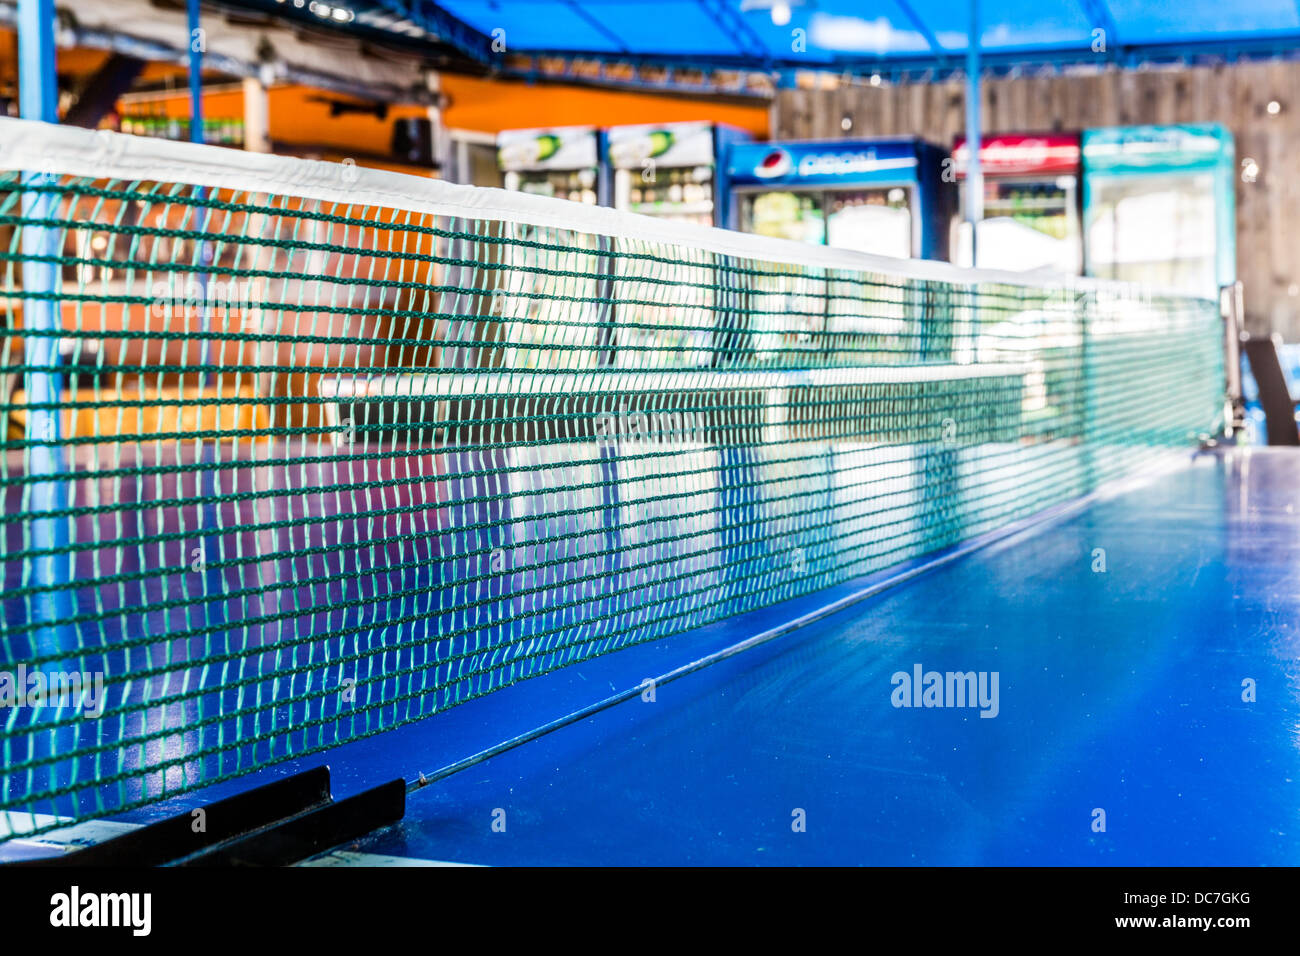 Libre d'un filet de tennis de table dans un bar Photo Stock